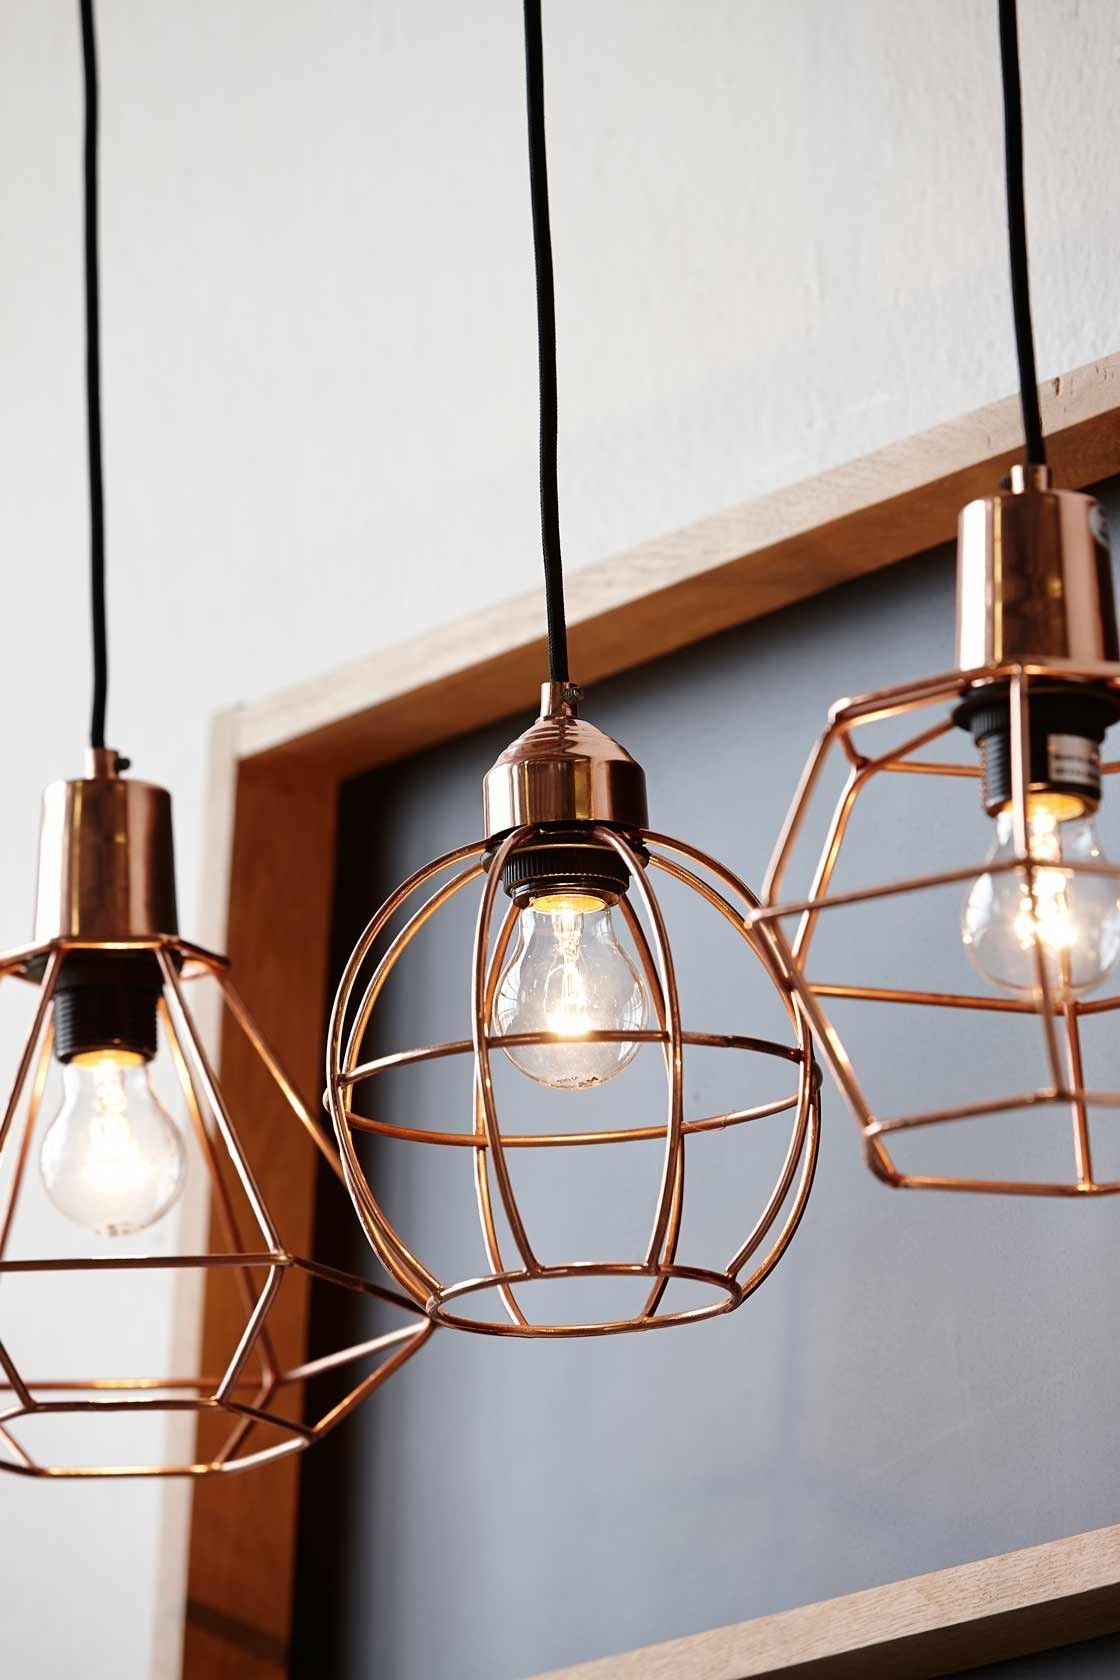 Love these copper wire lights for the kitchen productdesign love these copper wire lights for the kitchen productdesign lightingdesign greentooth Image collections